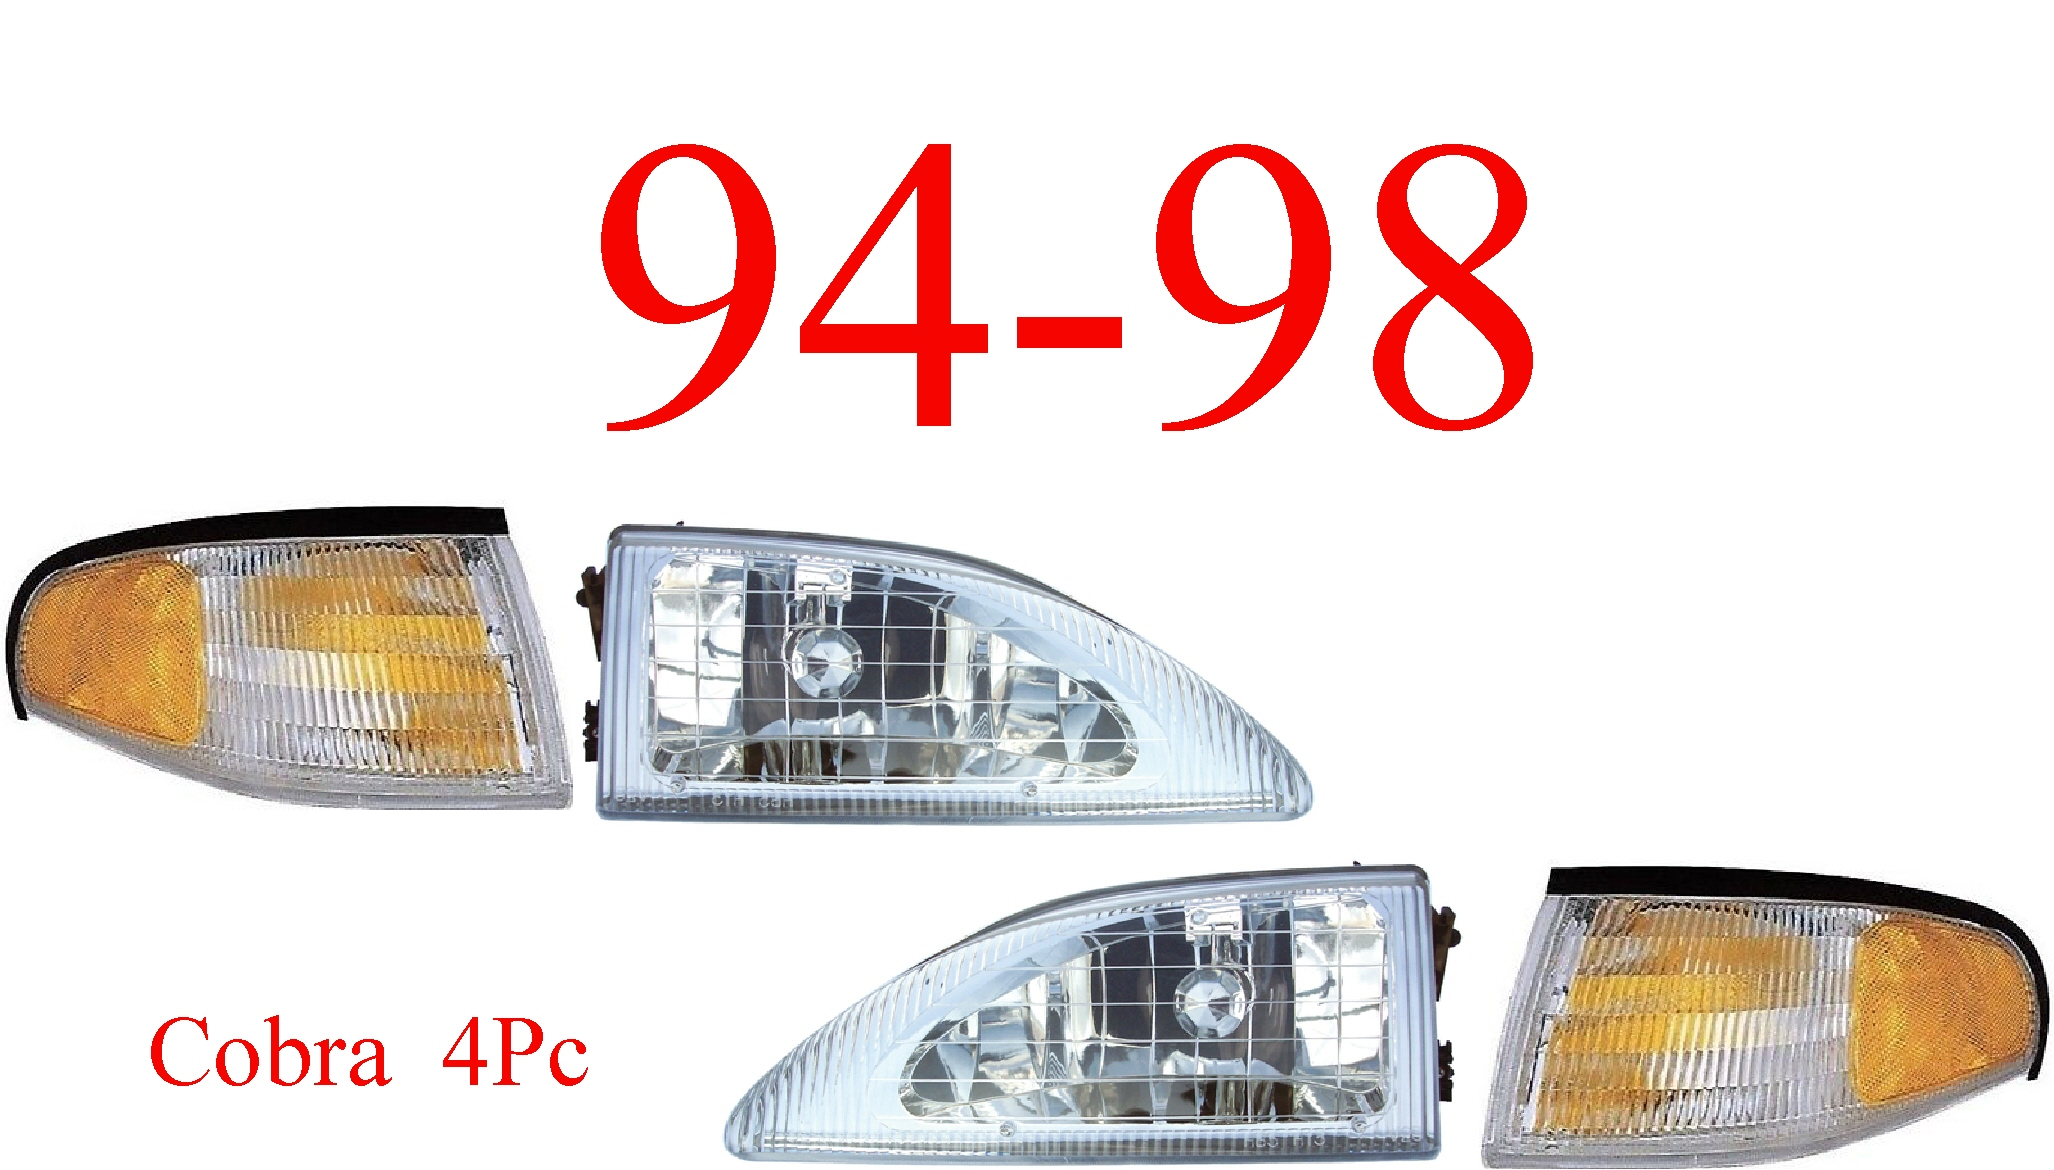 94-98 Mustang Cobra 4Pc Head Light & Park Light Kit